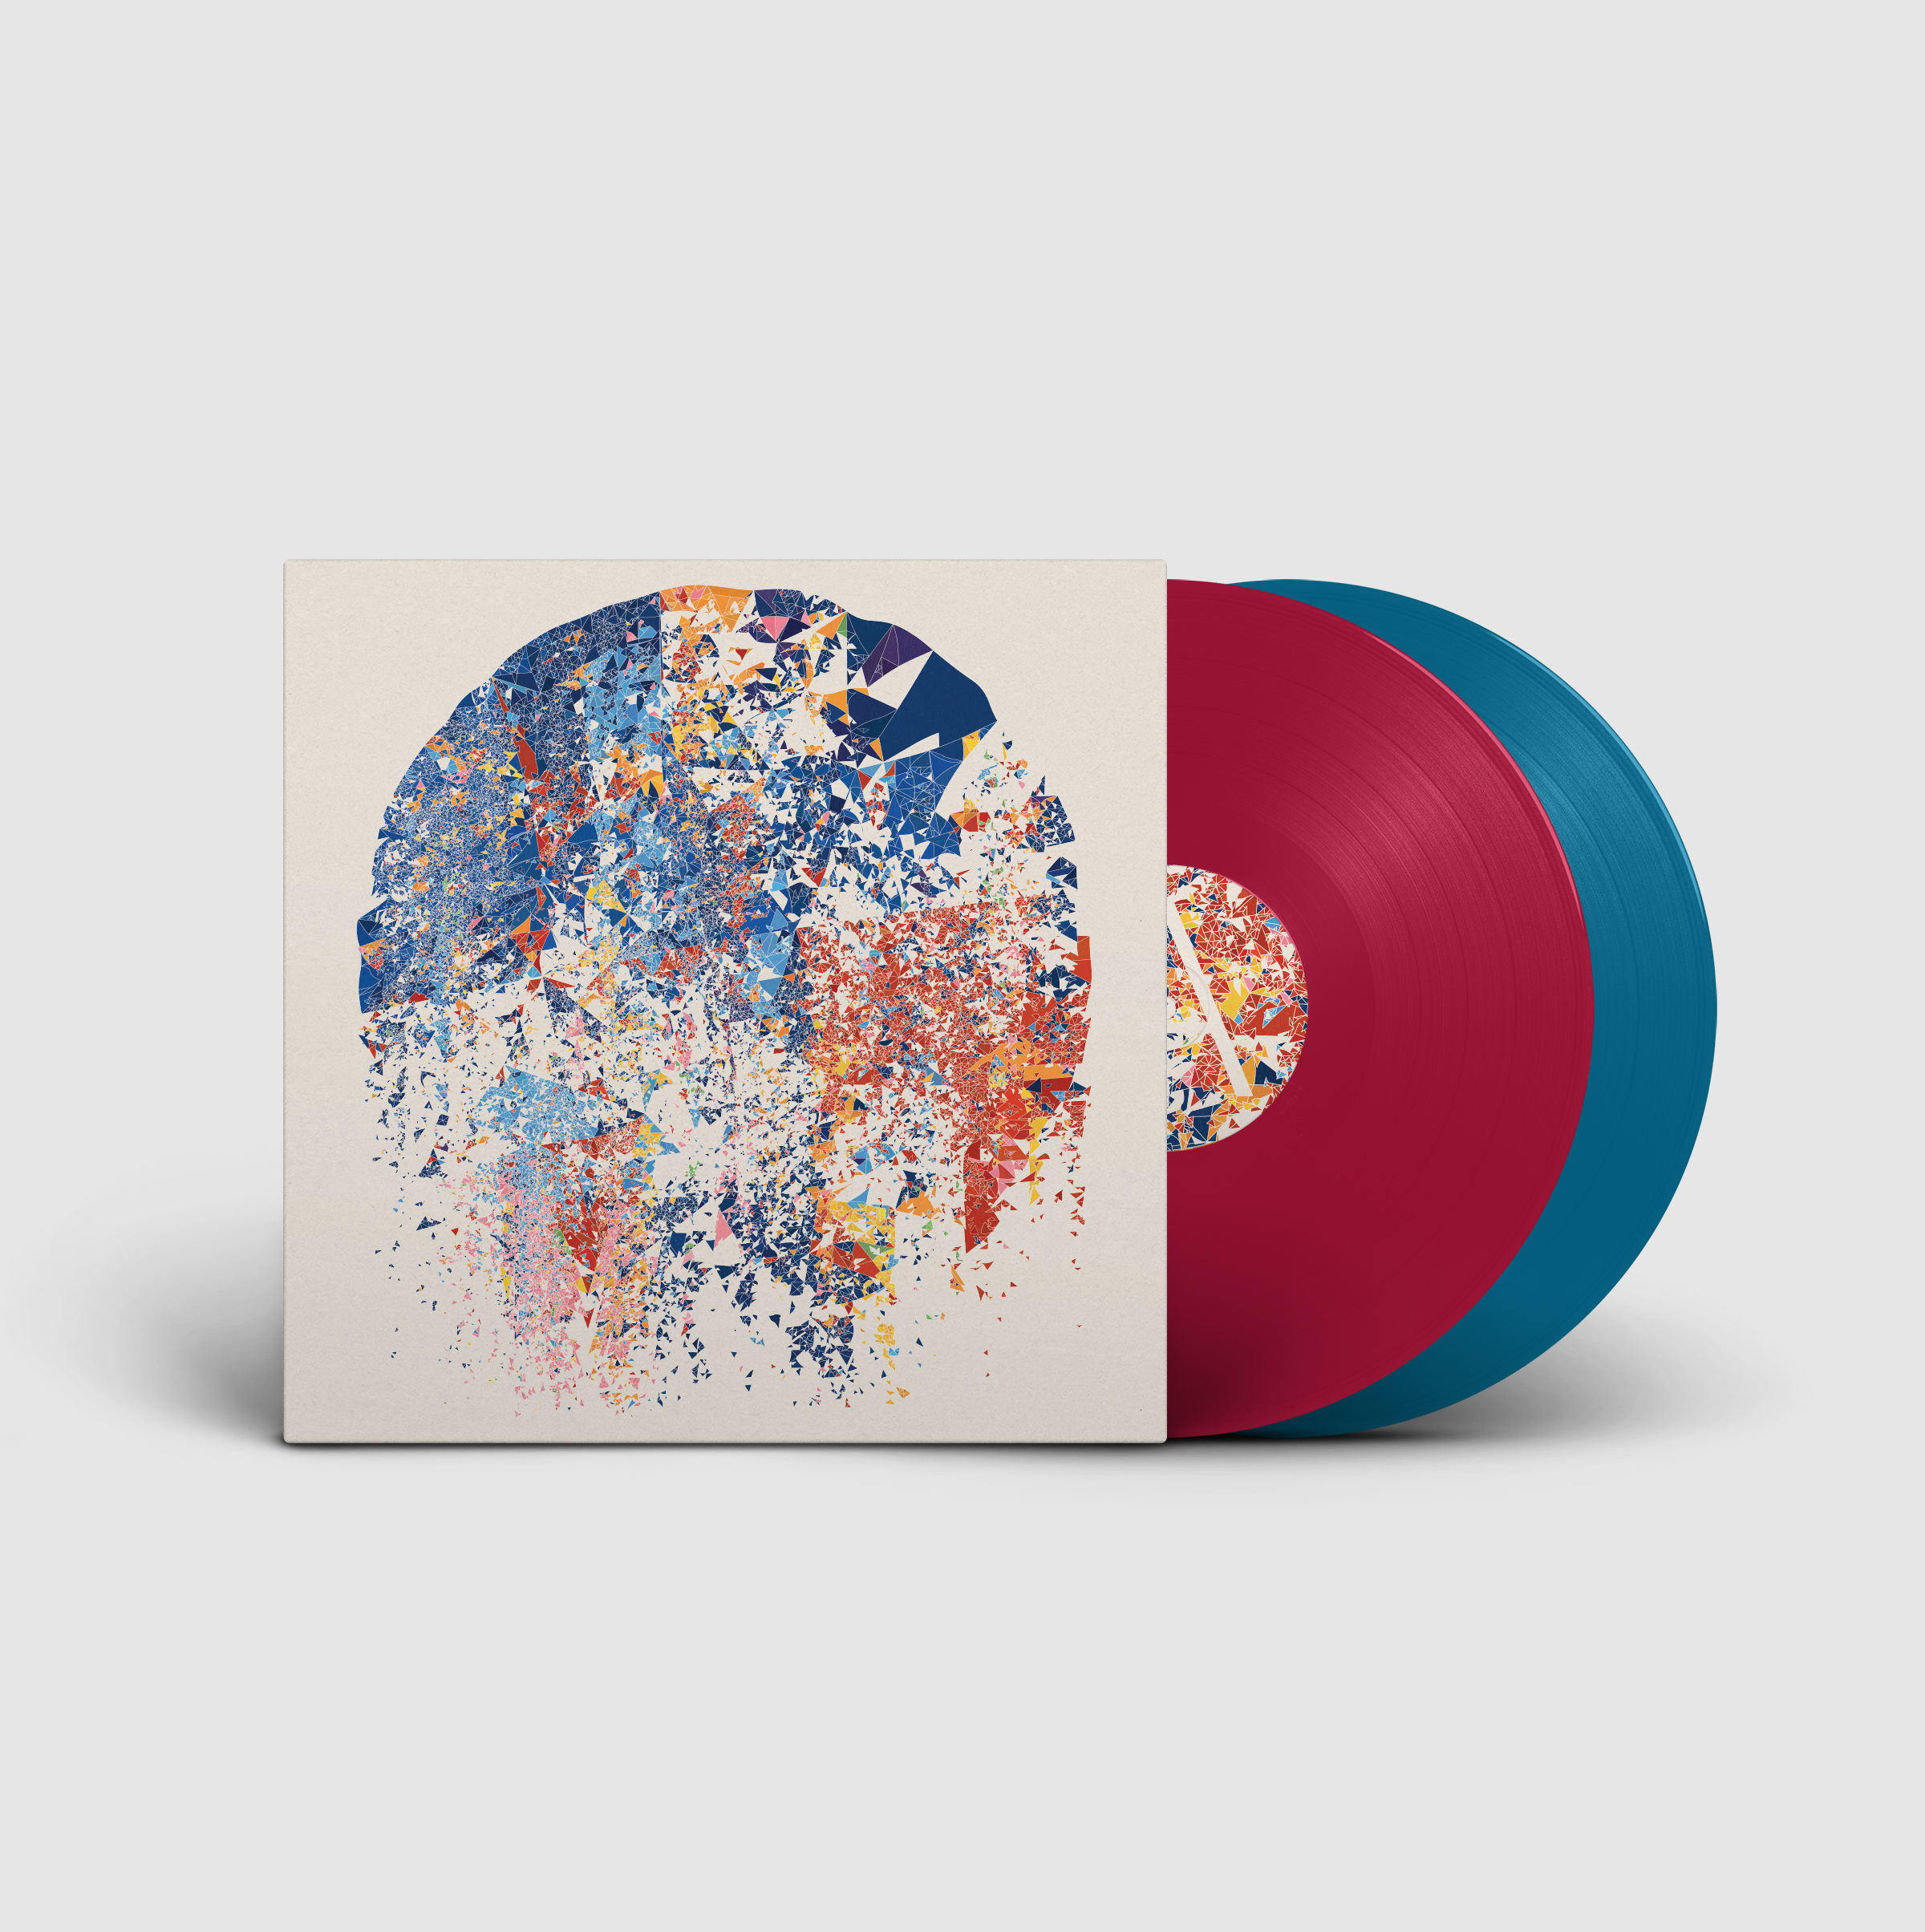 One Hundred Billion Sparks (Vinyl - Limited Edition Collector's Run) - Max Cooper